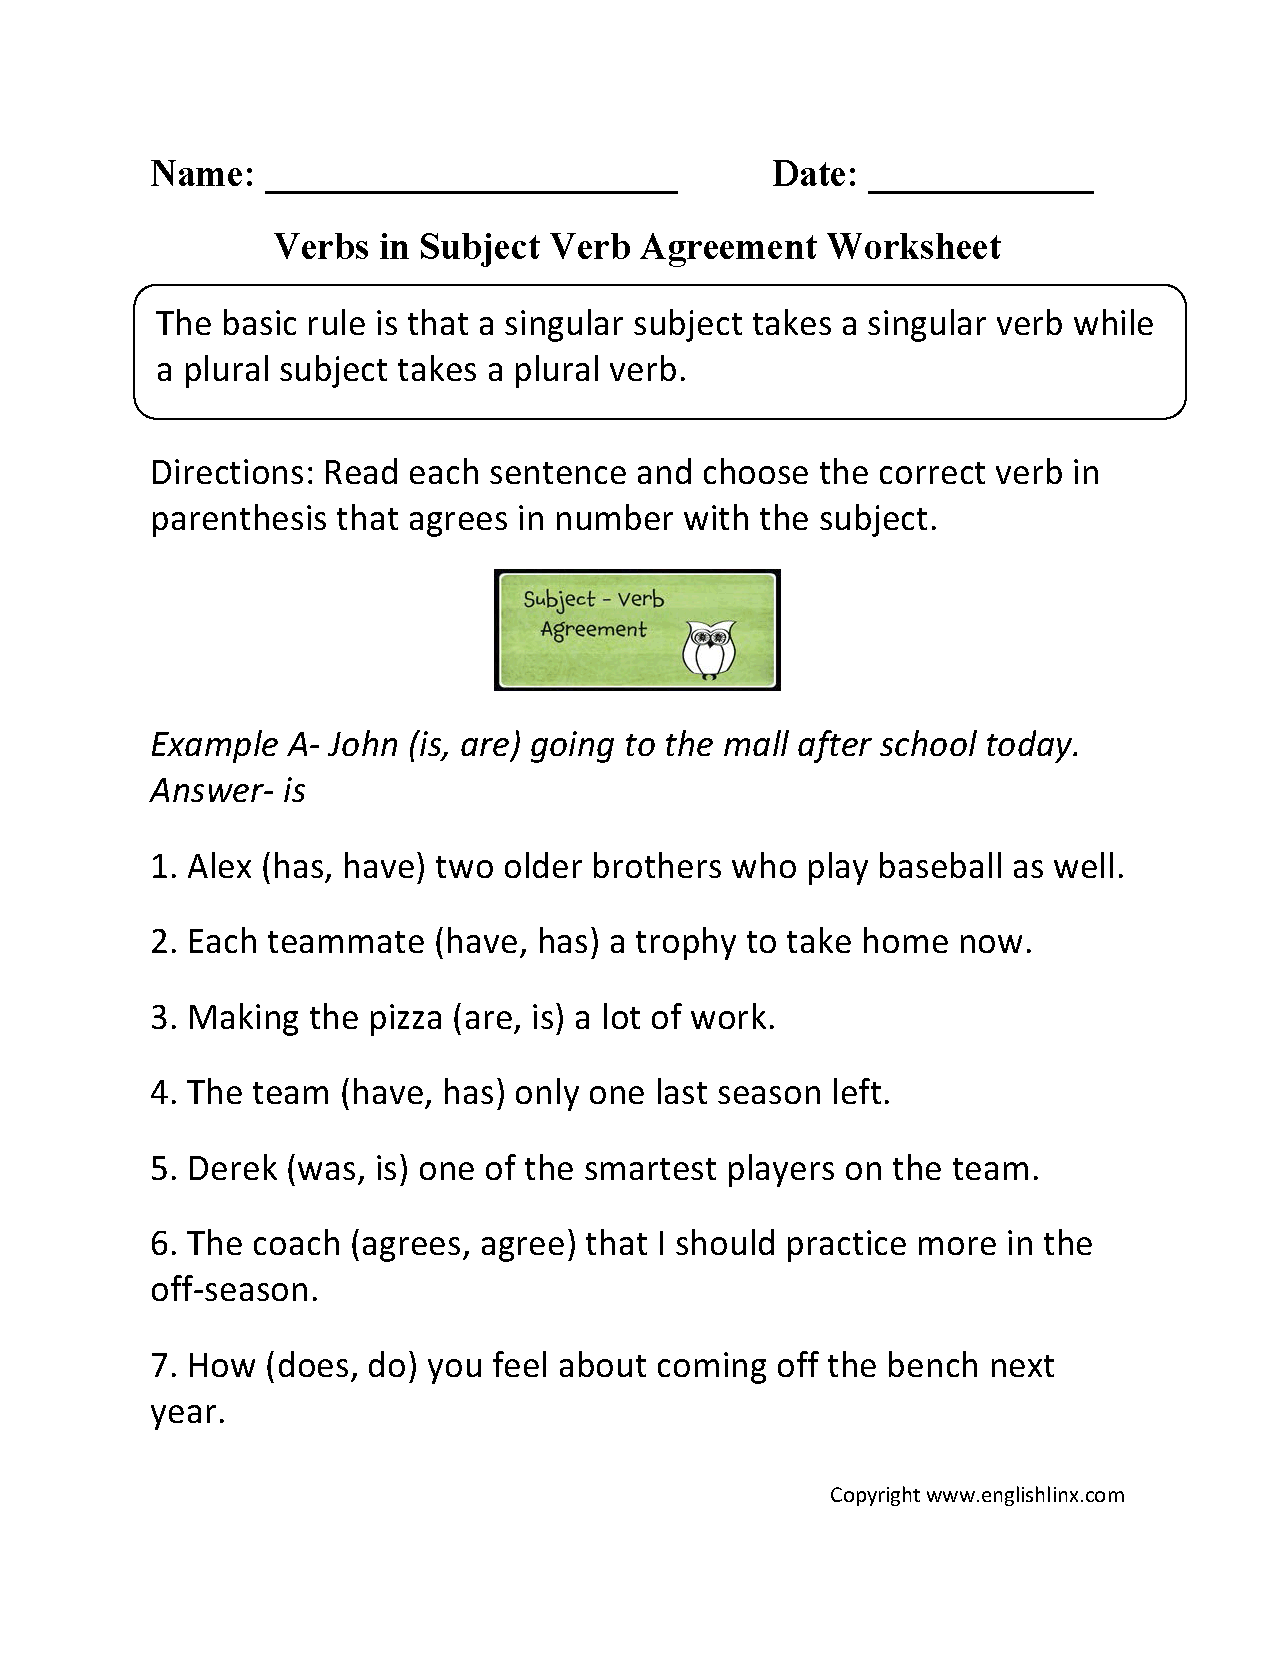 Amazing Grammar Pronoun Verb Agreement Worksheet Pronoun